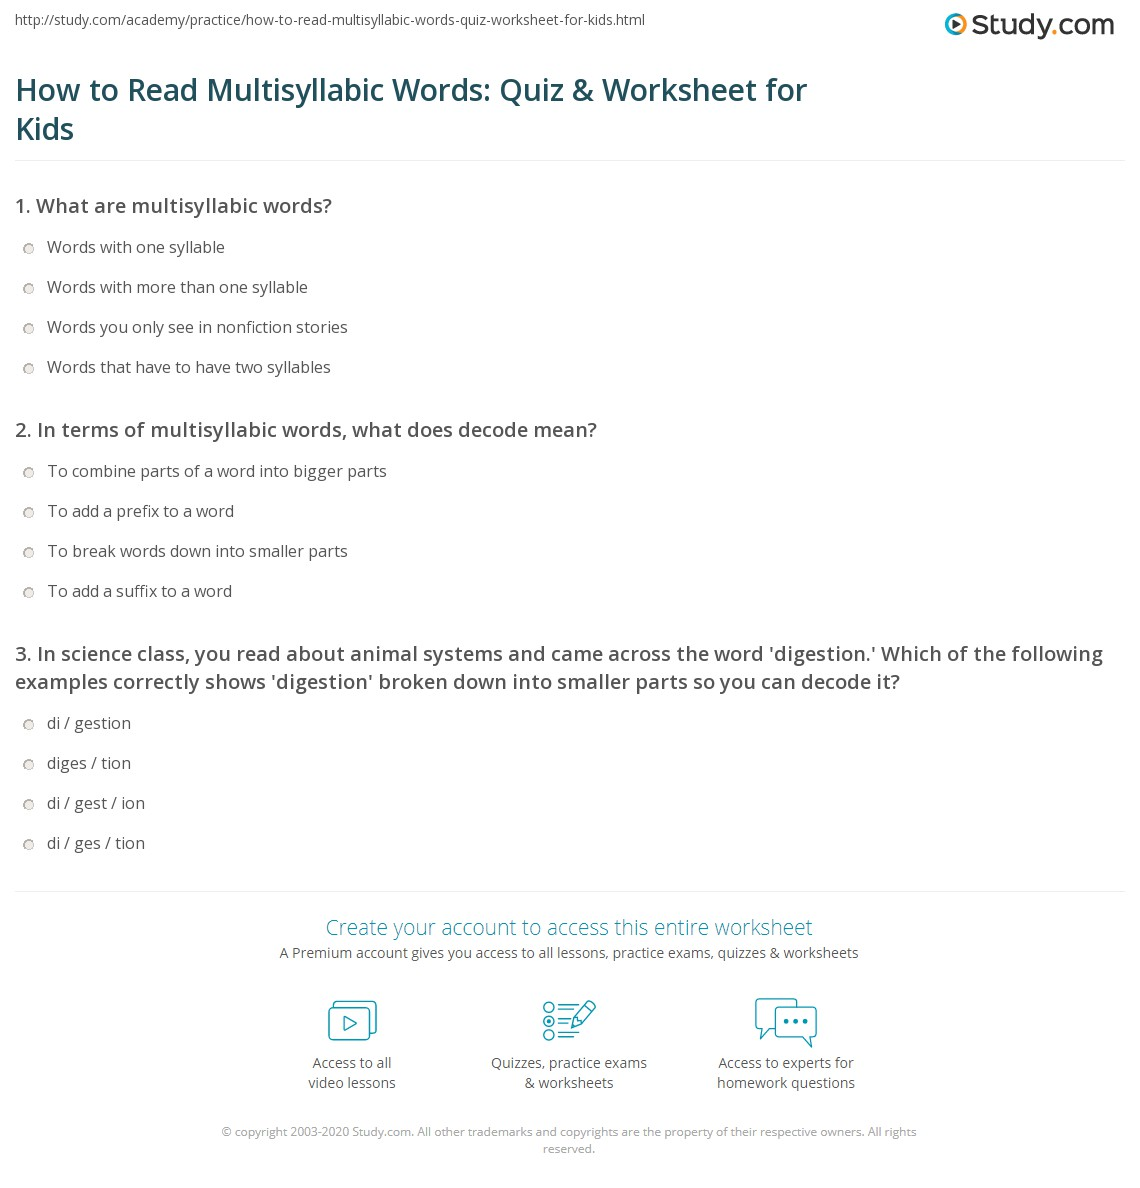 Worksheets Multisyllabic Words Worksheets how to read multisyllabic words quiz worksheet for kids study com print reading lesson worksheet